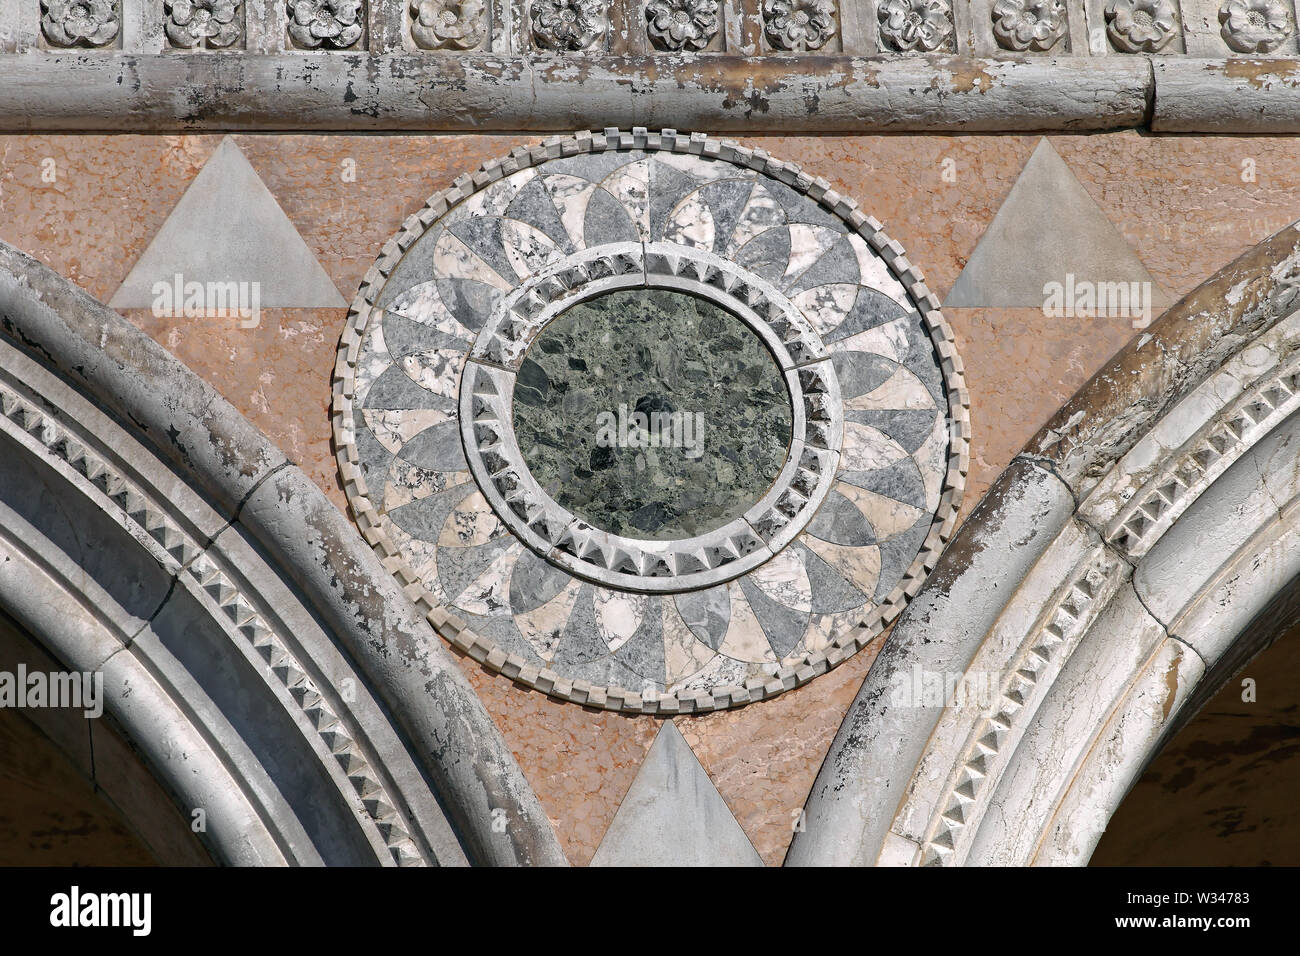 Round Marble Decor at Doge Palace in Venice Italy - Stock Image